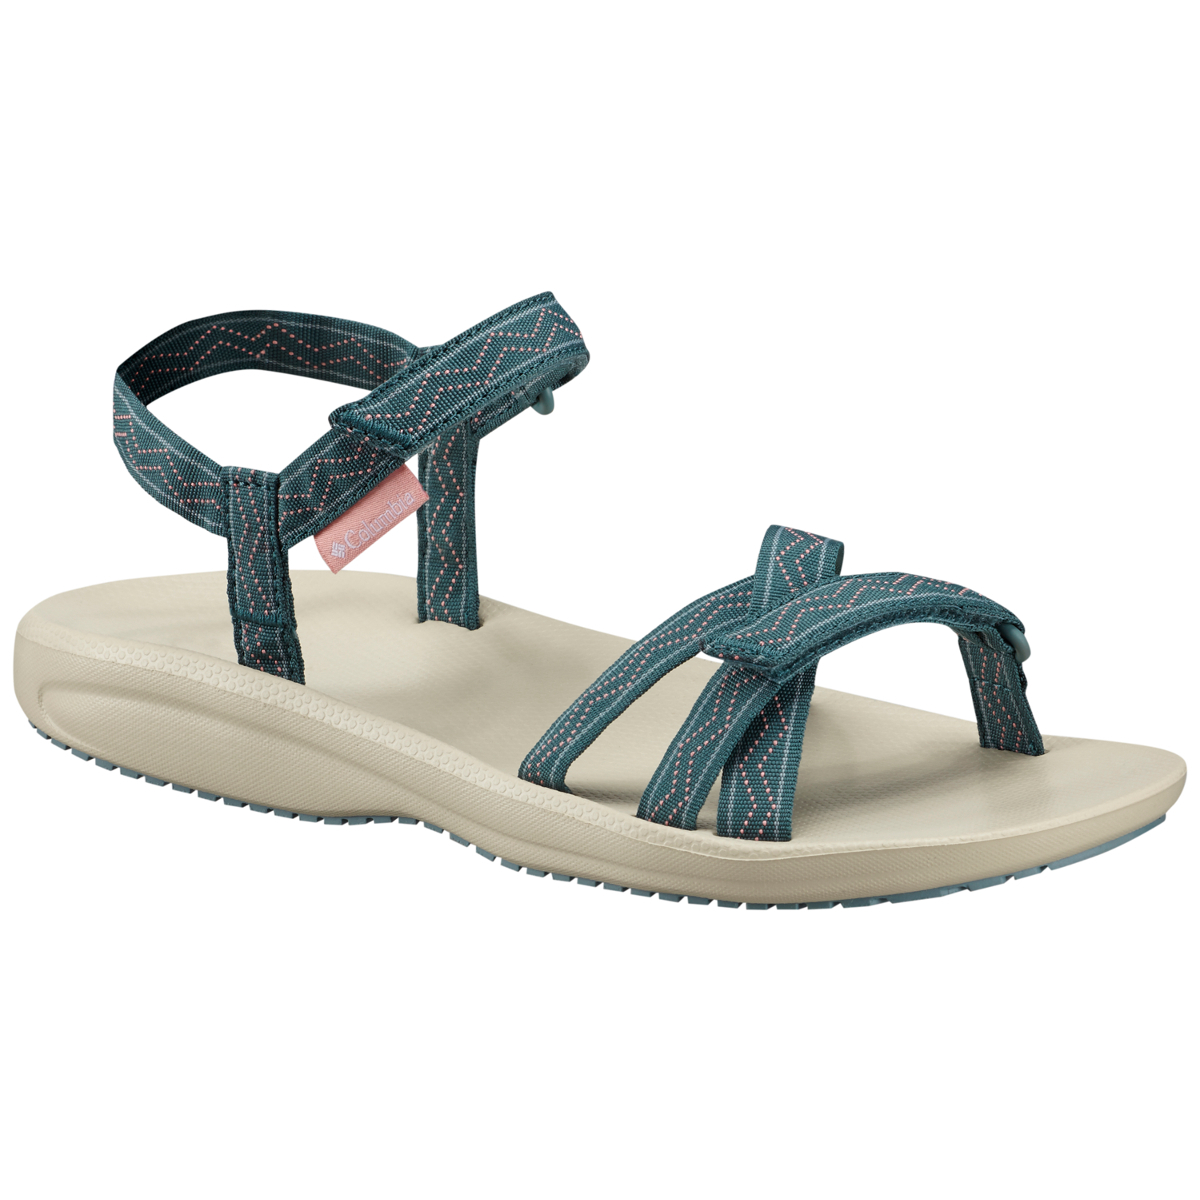 Columbia Women's Wave Train Sandal - Blue, 11